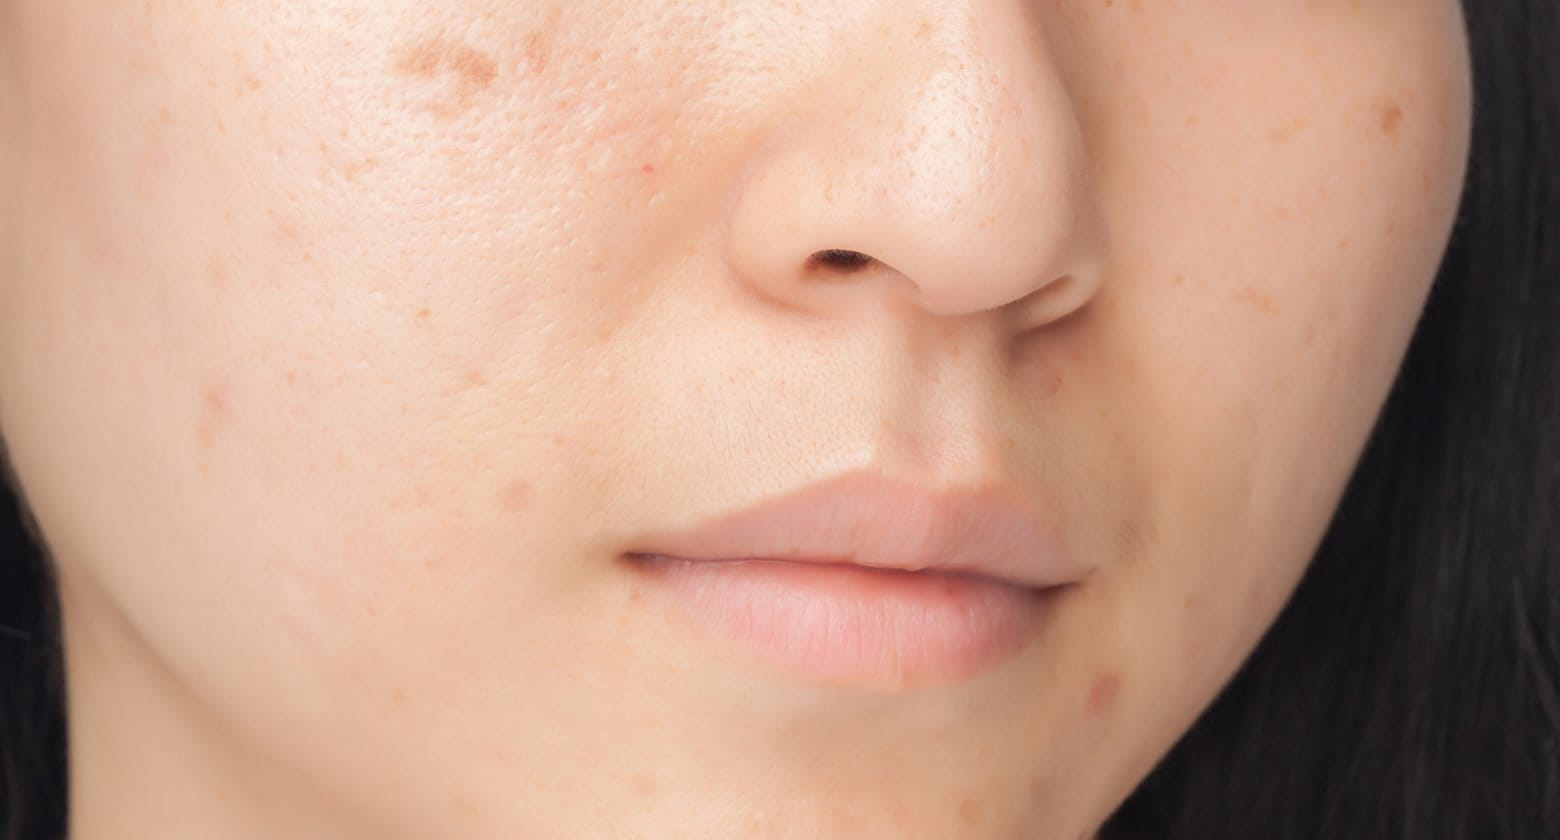 Pimple marks can be reduced and removed